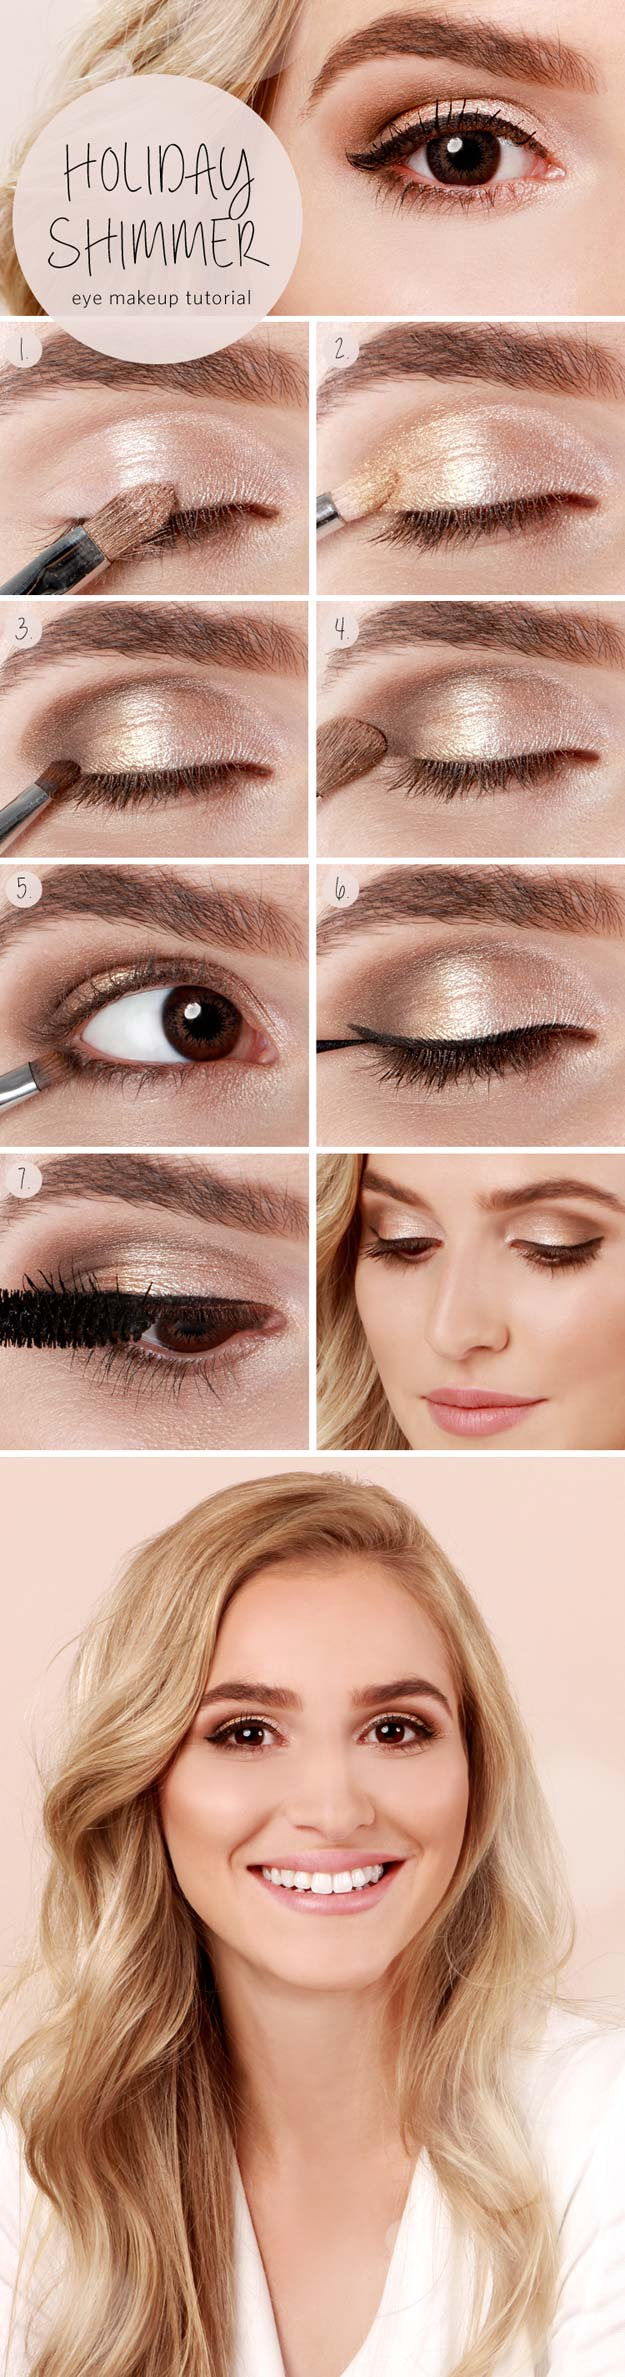 Check out these easy step by step makeup tutorials that are perfect for teens and beginners.